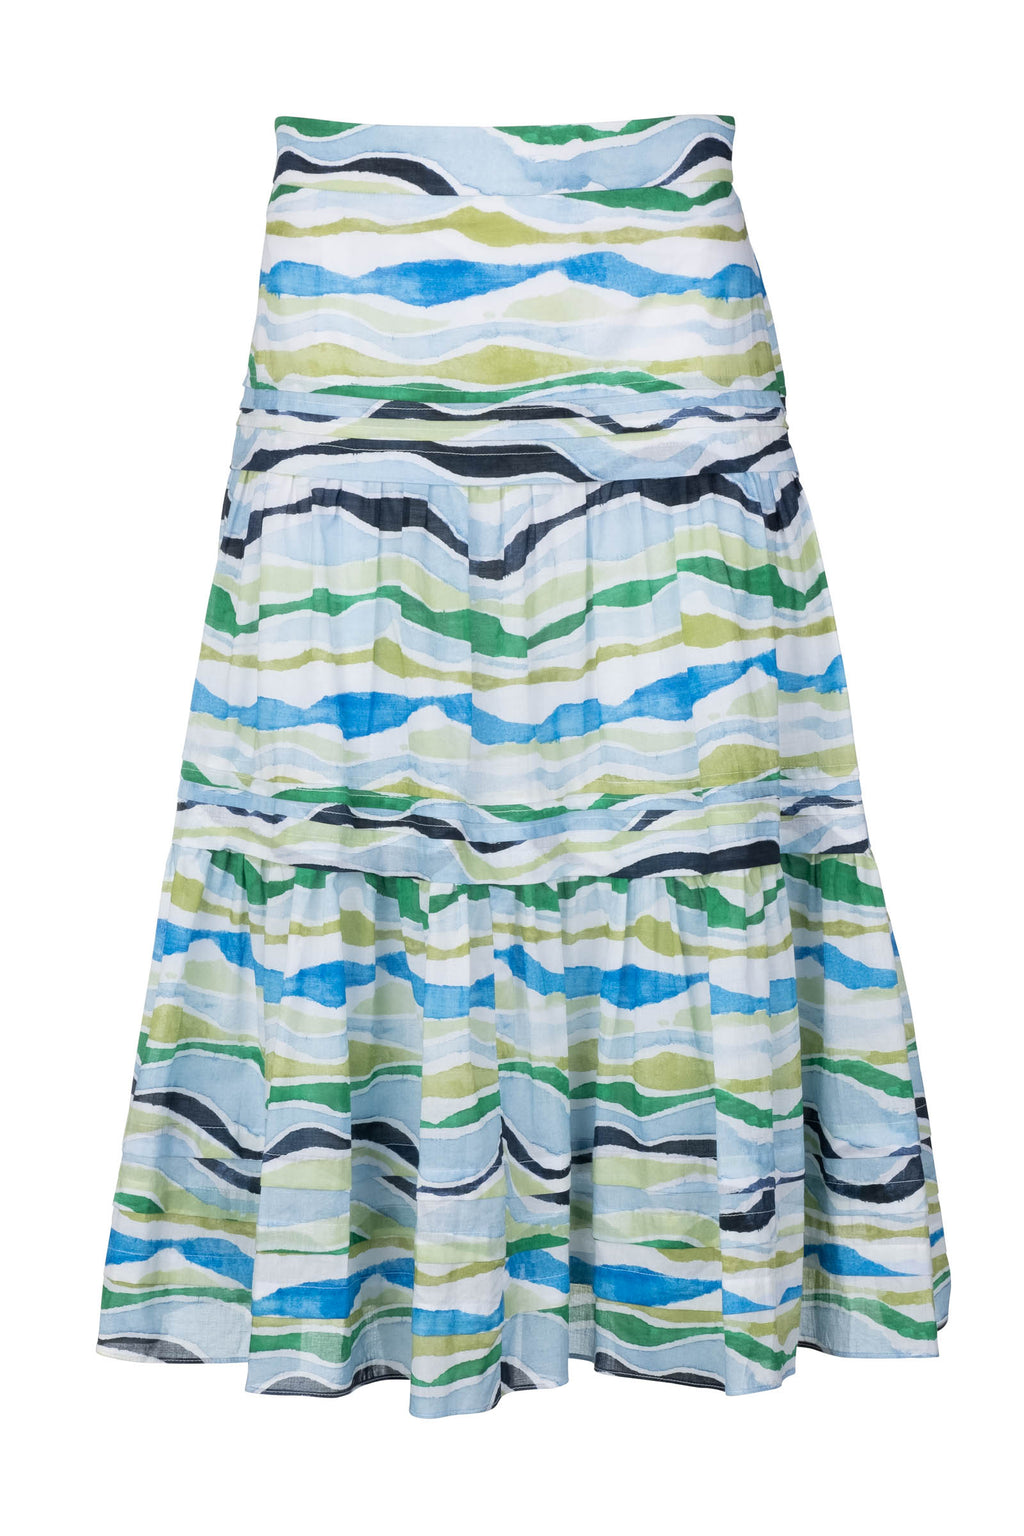 Pintuck Midi Skirt - Blue Watercolor